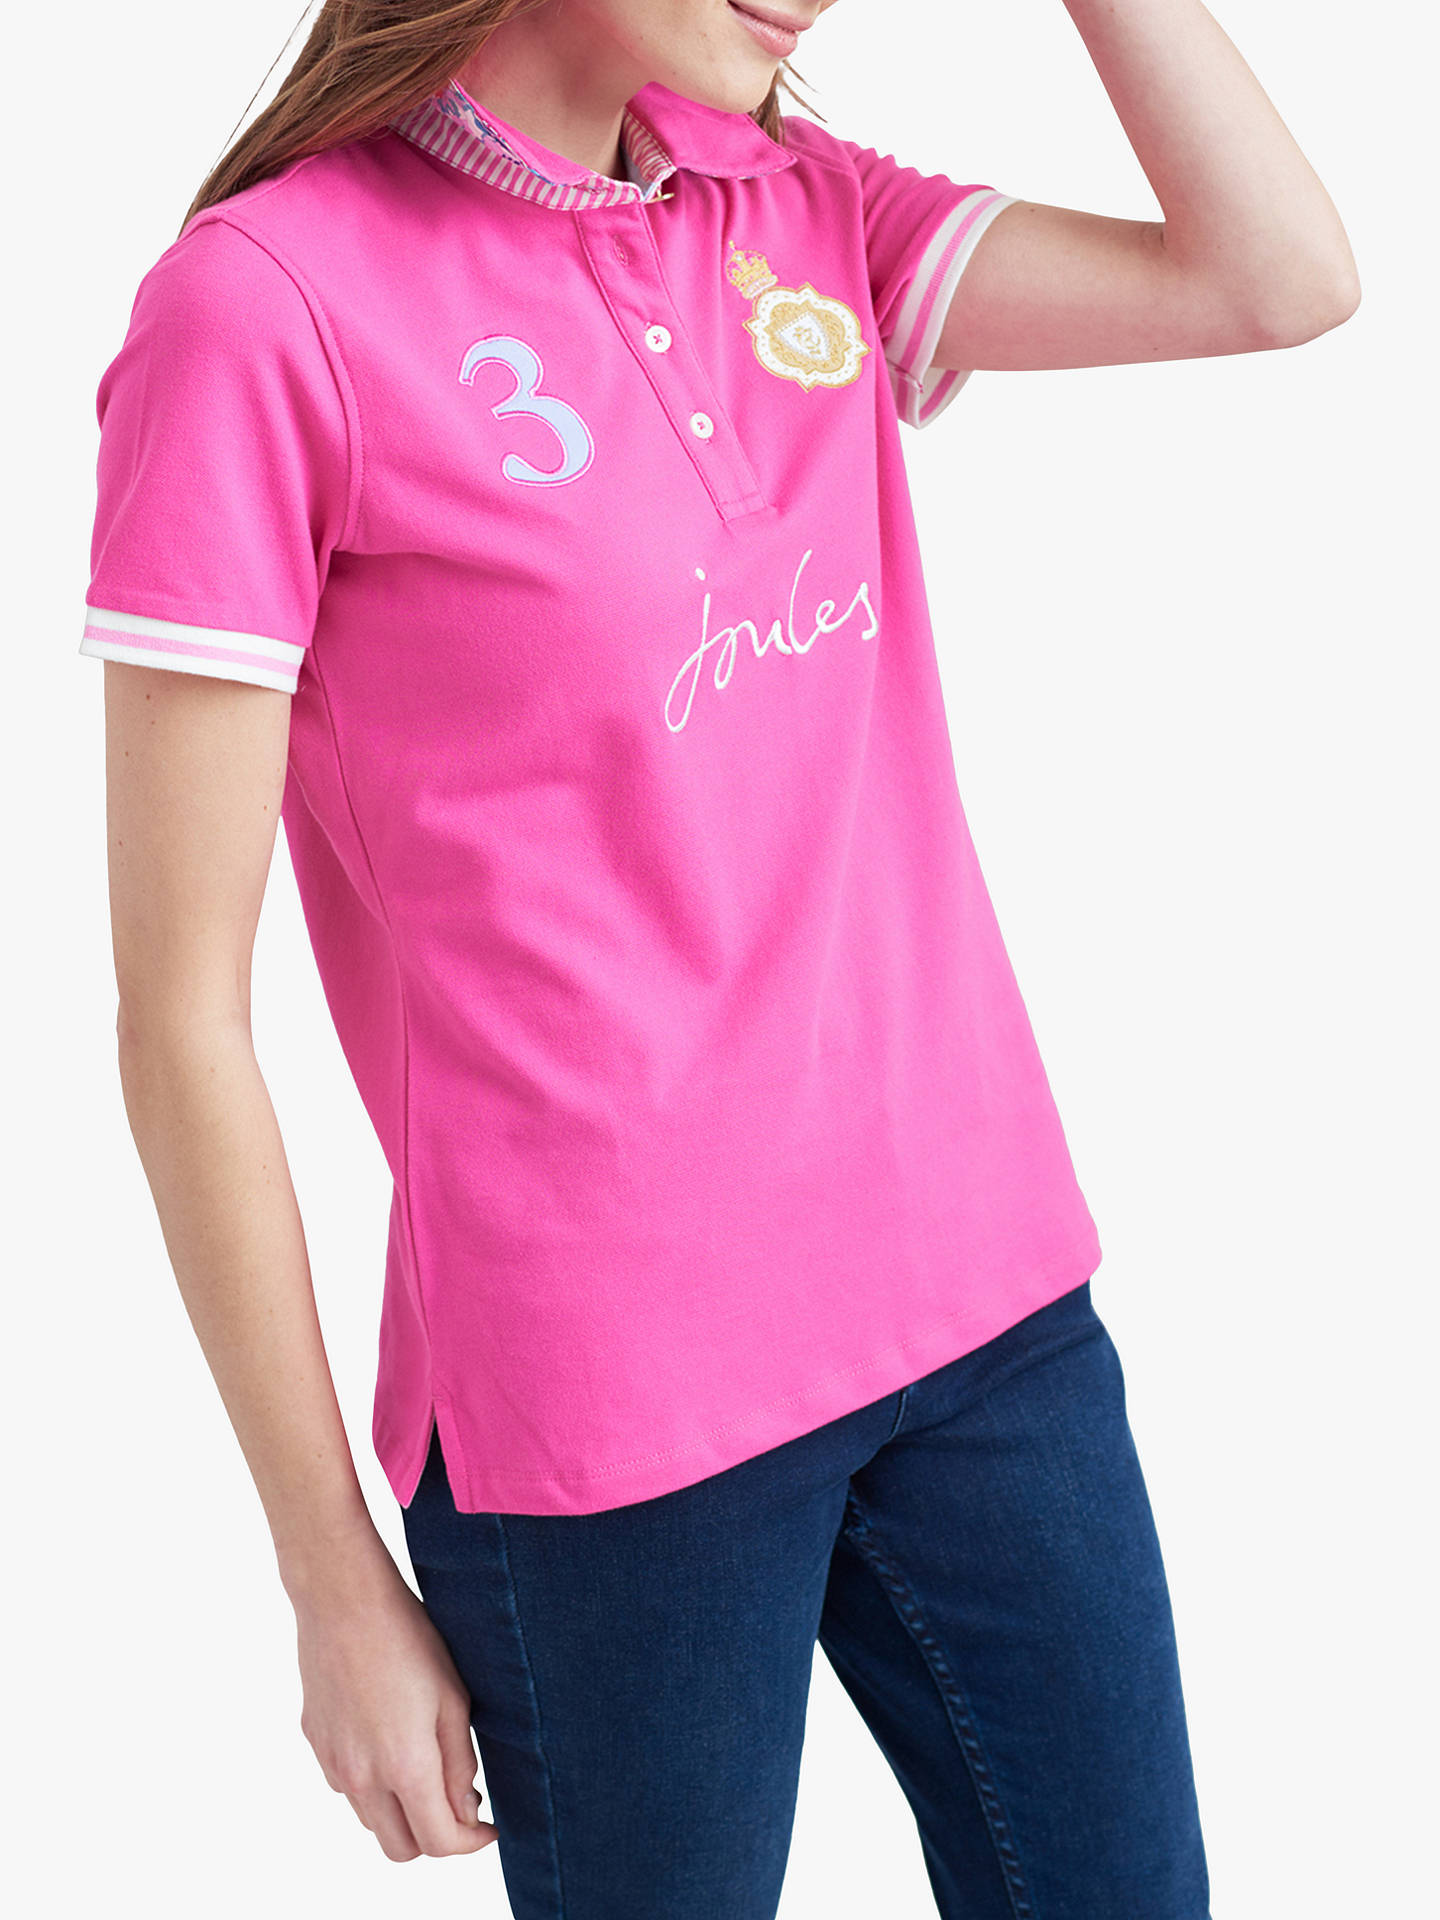 c2f8d3200cde4 Buy Joules Beaucroft Polo Shirt, Pink, 10 Online at johnlewis.com ...